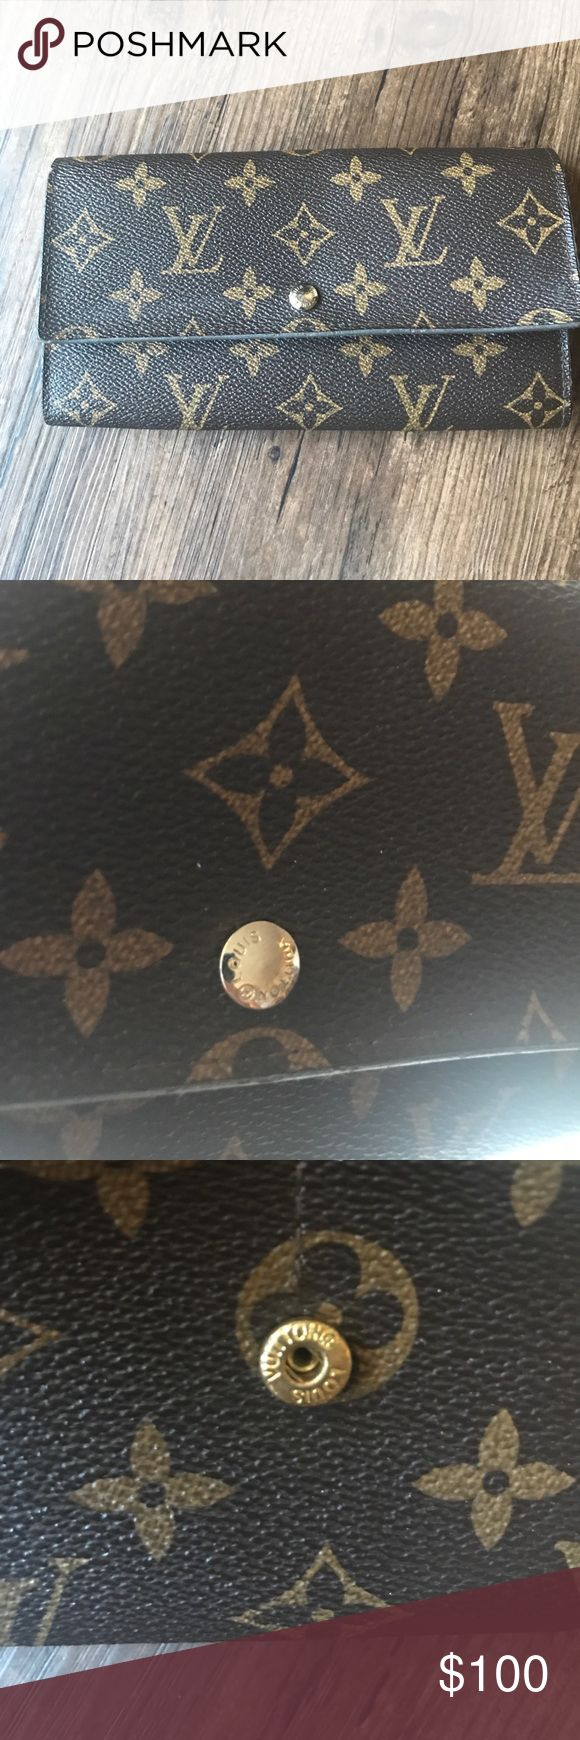 Louis Vuitton Louie Vuitton wallet It was in my sons diaper bag and his baby powder spilled and it got into my wallet so that's why the inside looks like that but I think u can just wipe it off. Louis Vuitton Bags Wallets